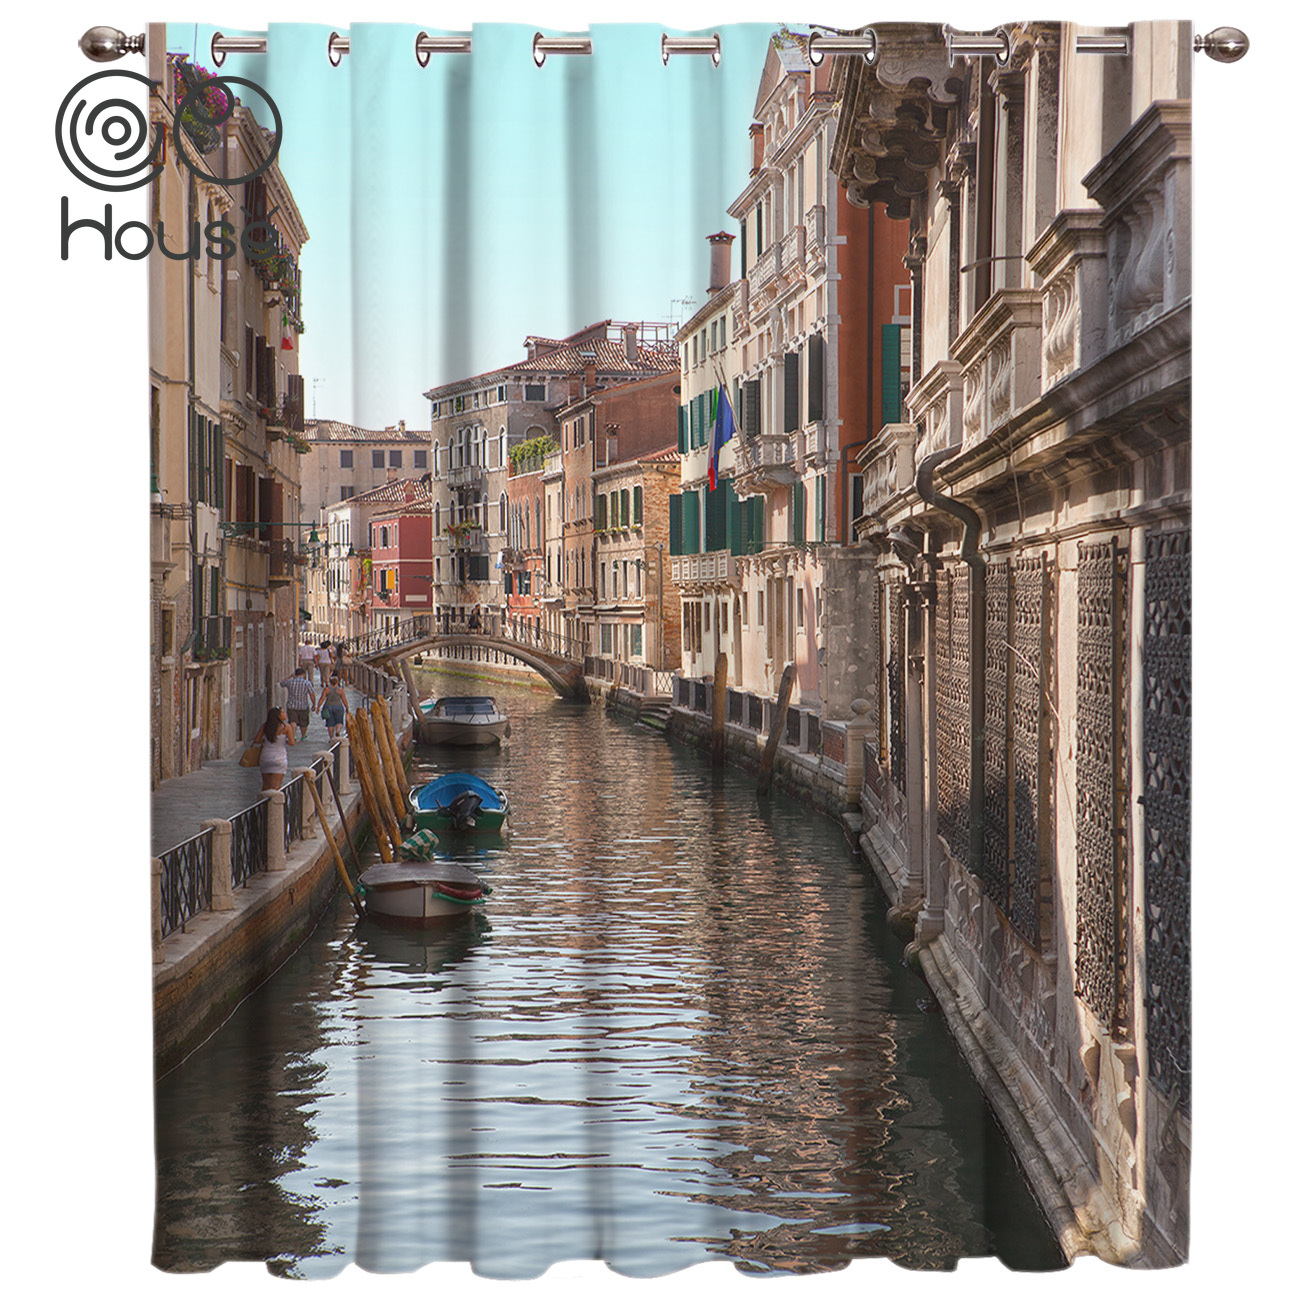 COCOHouse Venice Europe City Window Curtains Dark Living Room Blackout Bathroom Bedroom Outdoor Indoor Decor Print Kids Curtain